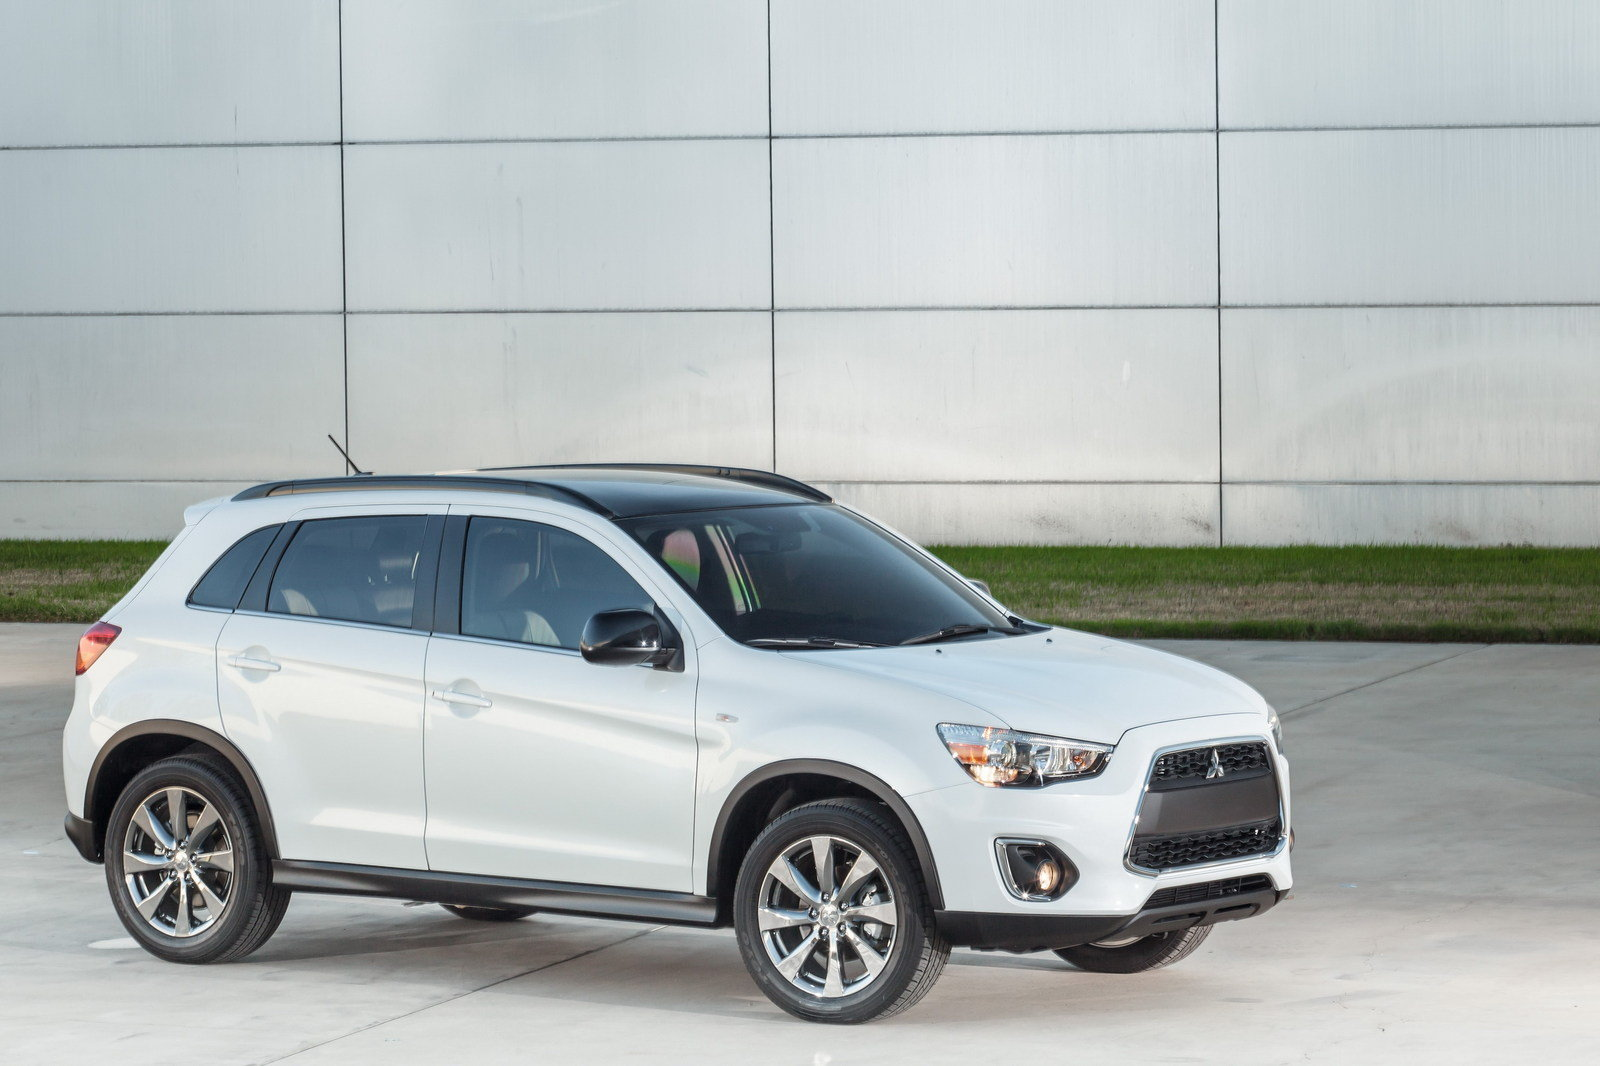 2013 mitsubishi outlander sport limited edition review top speed. Black Bedroom Furniture Sets. Home Design Ideas